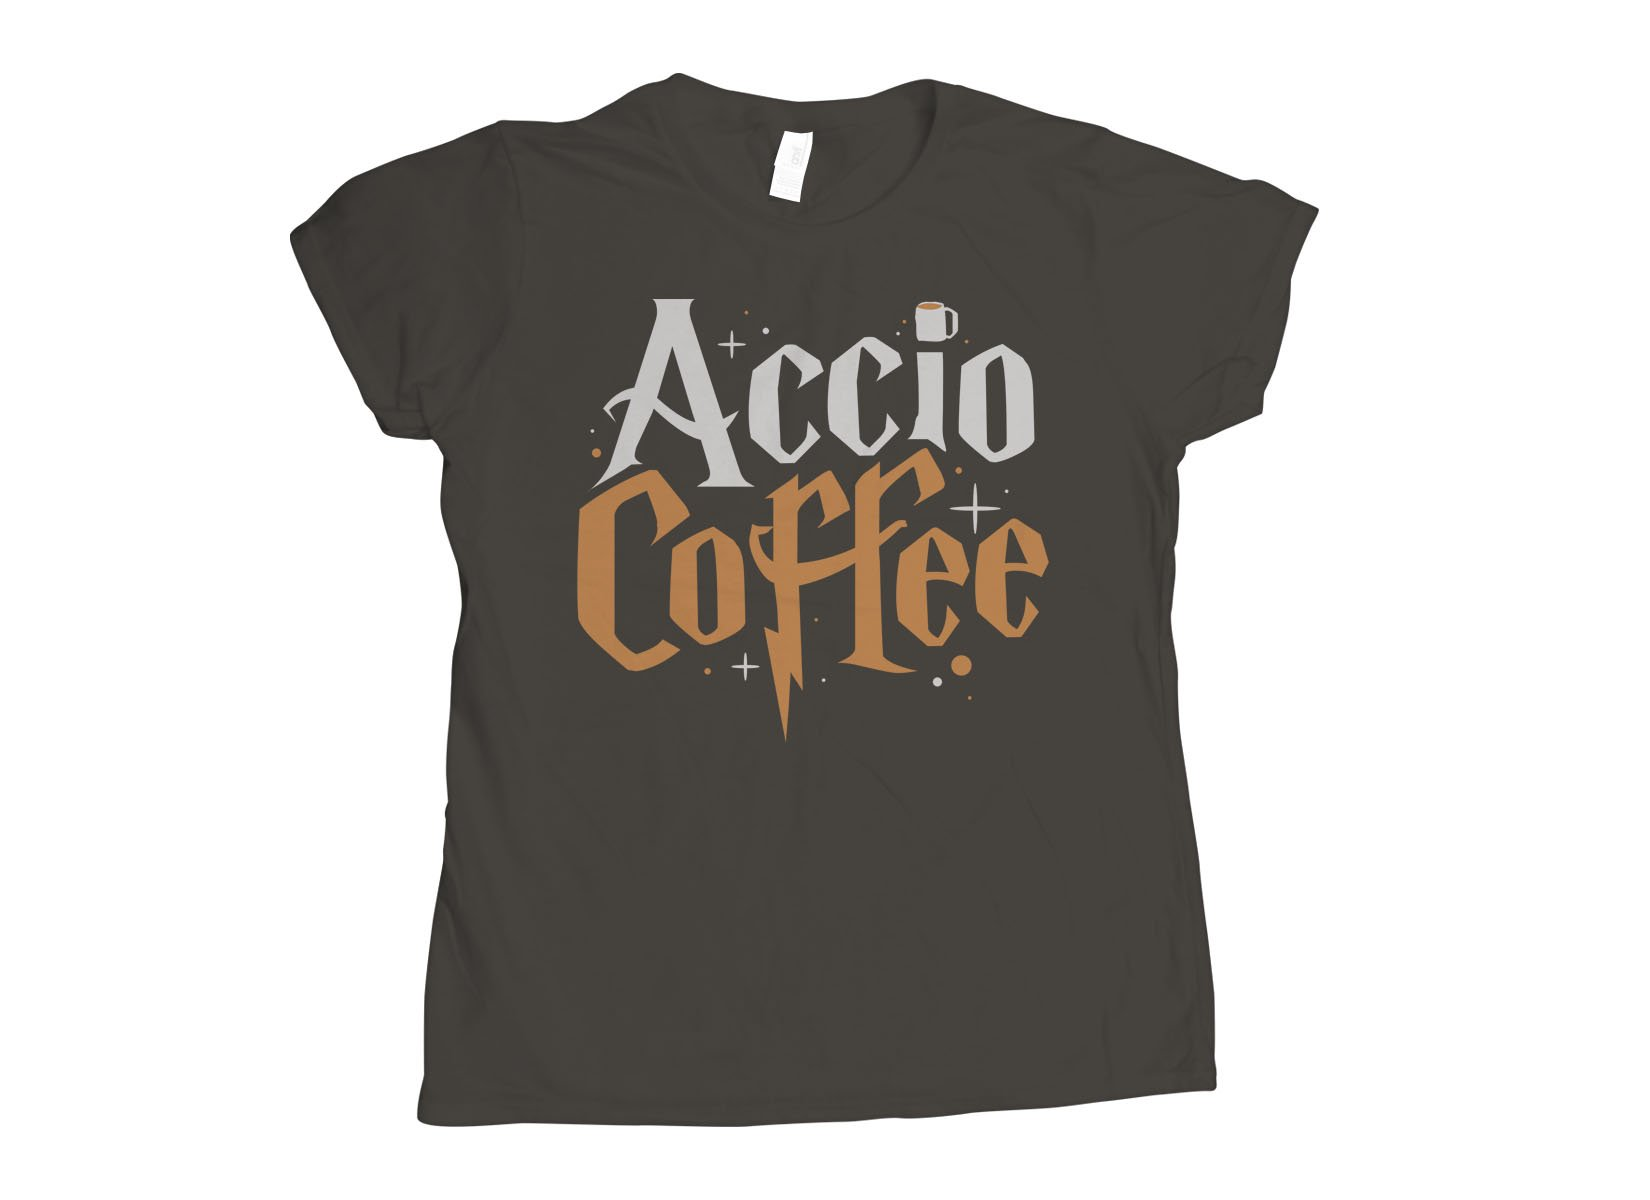 Accio Coffee on Womens T-Shirt